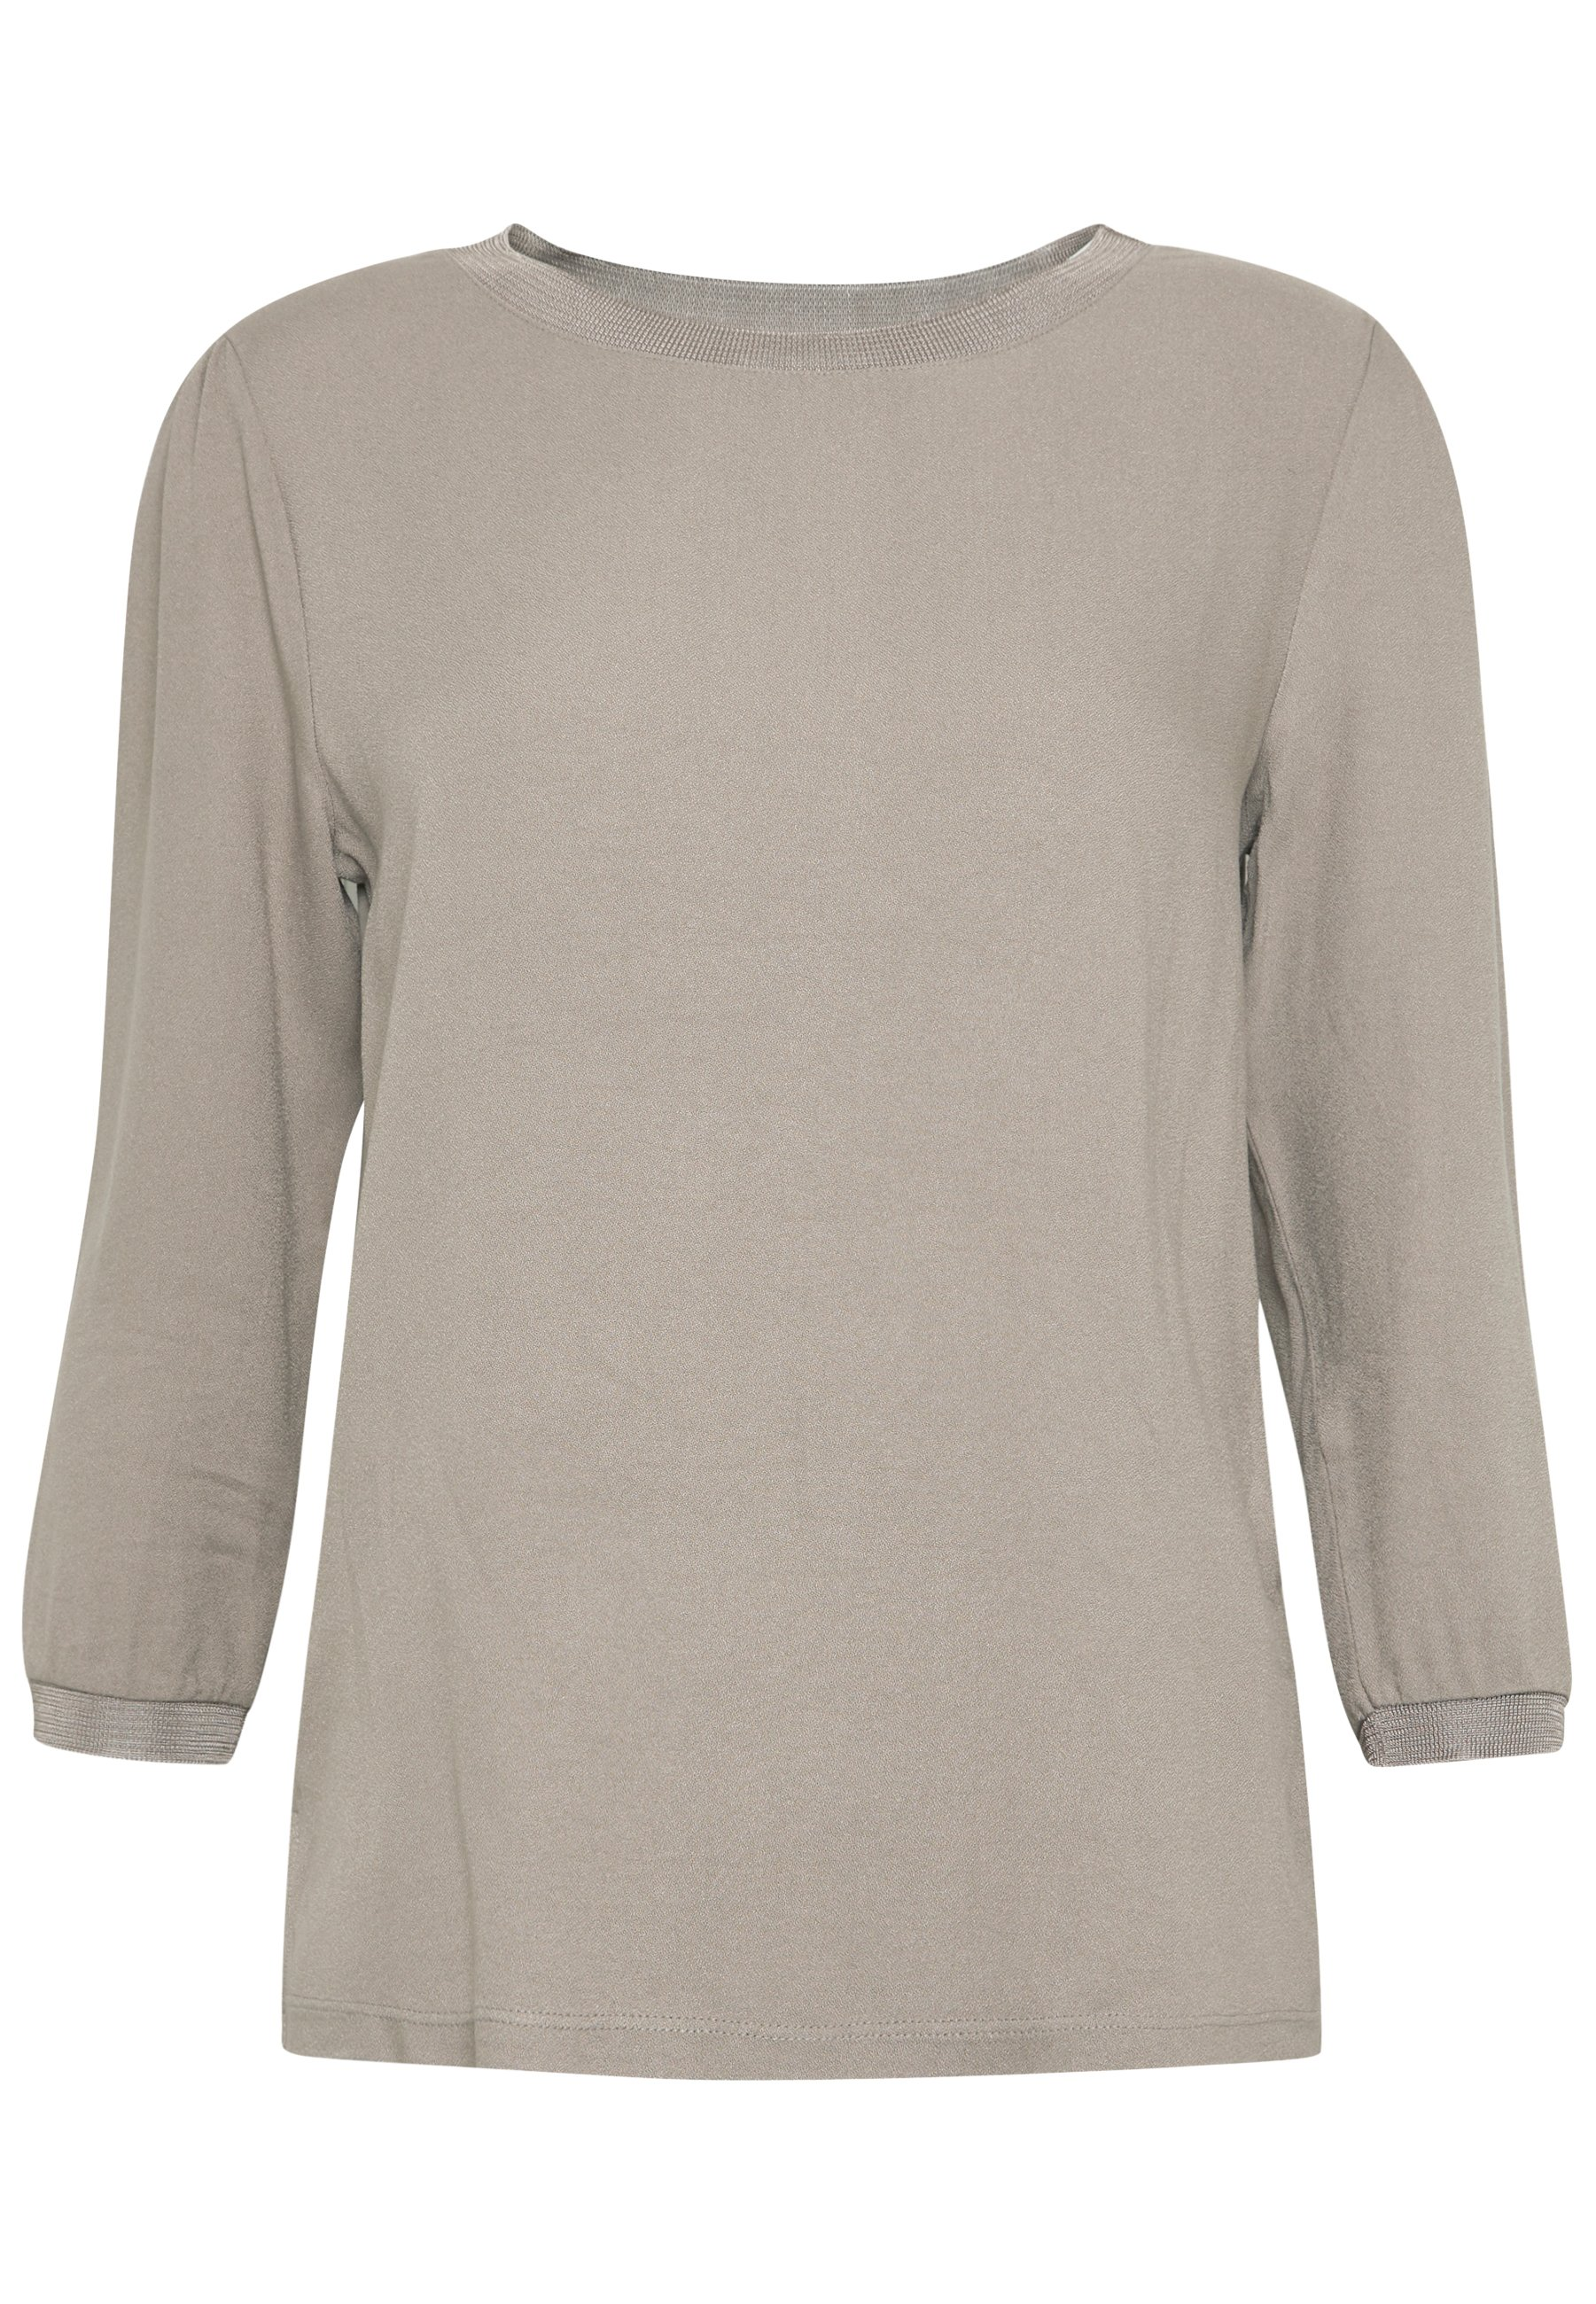 Rich & Royal Longsleeve Woven Mix - Blus Taupe